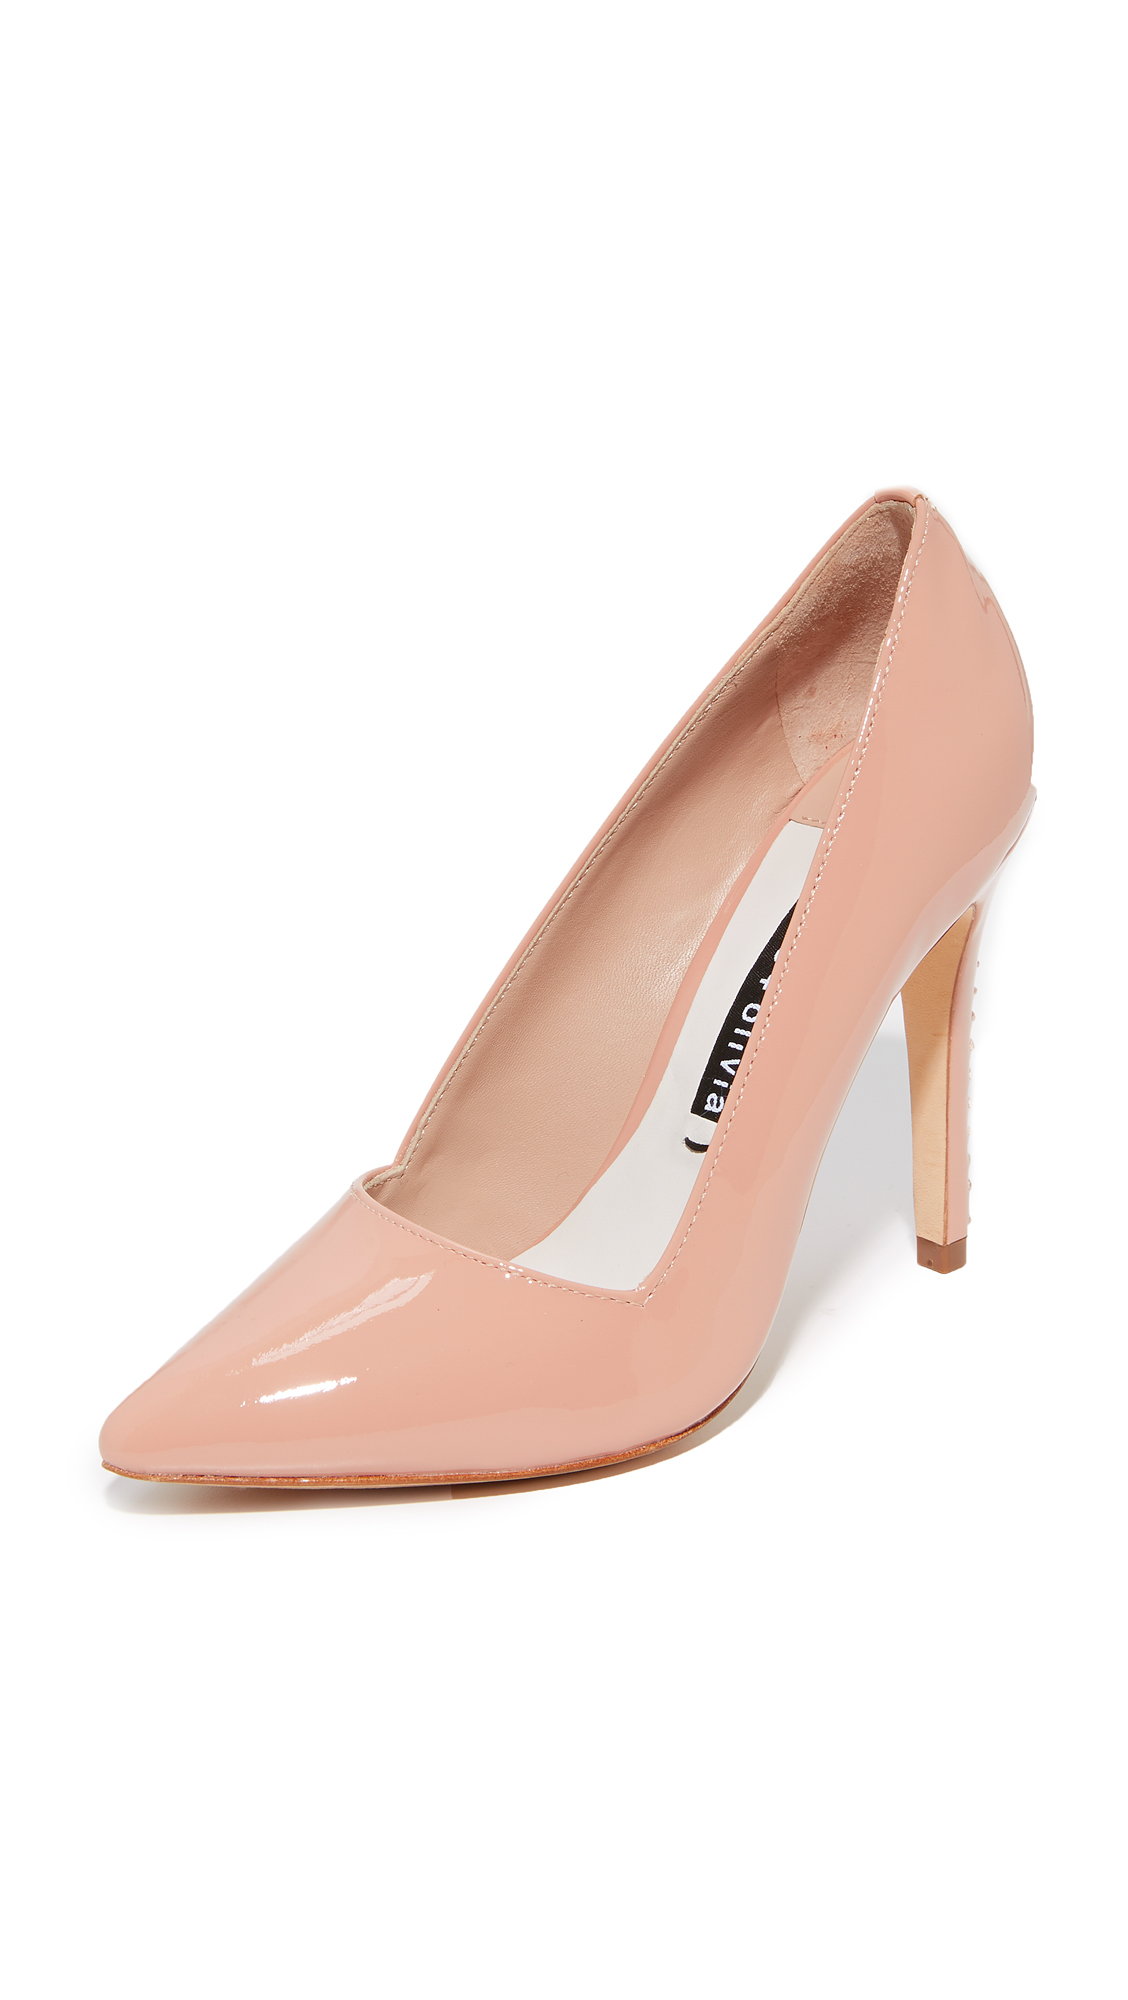 alice + olivia Dina Pumps - Rose Tan